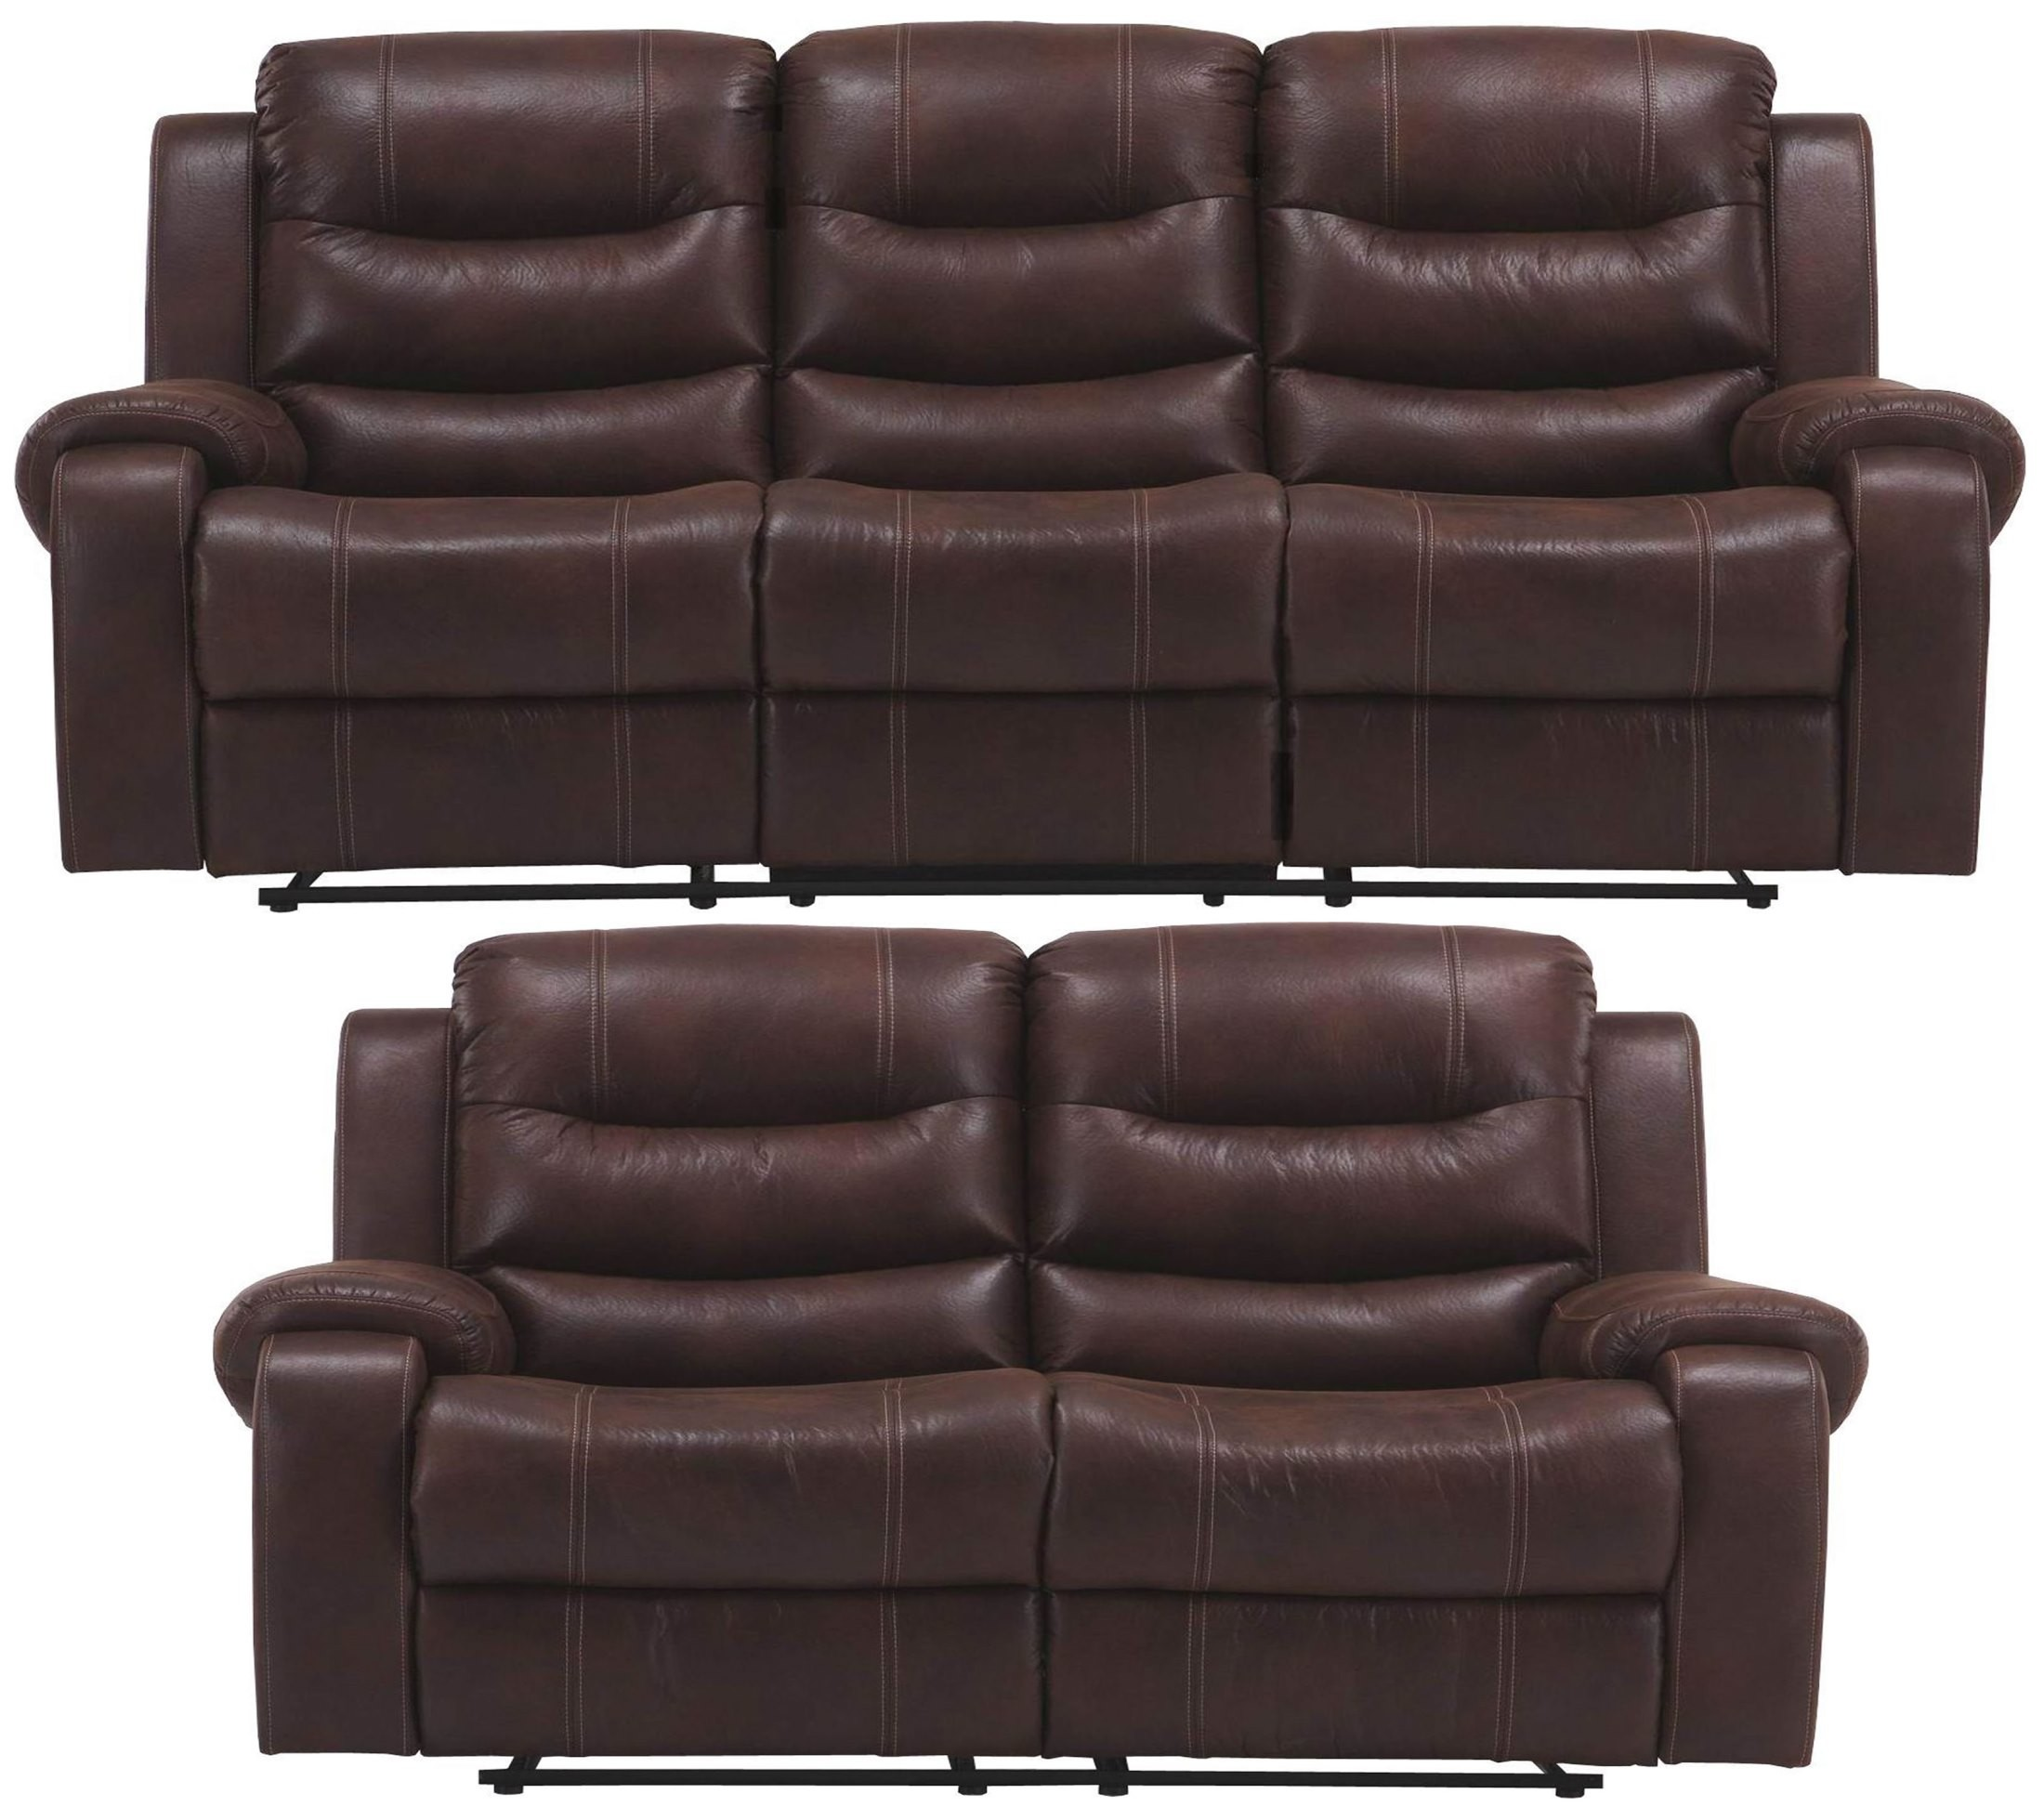 Brahms cowboy dual reclining sofa from parker living mbra Cowboy sofa